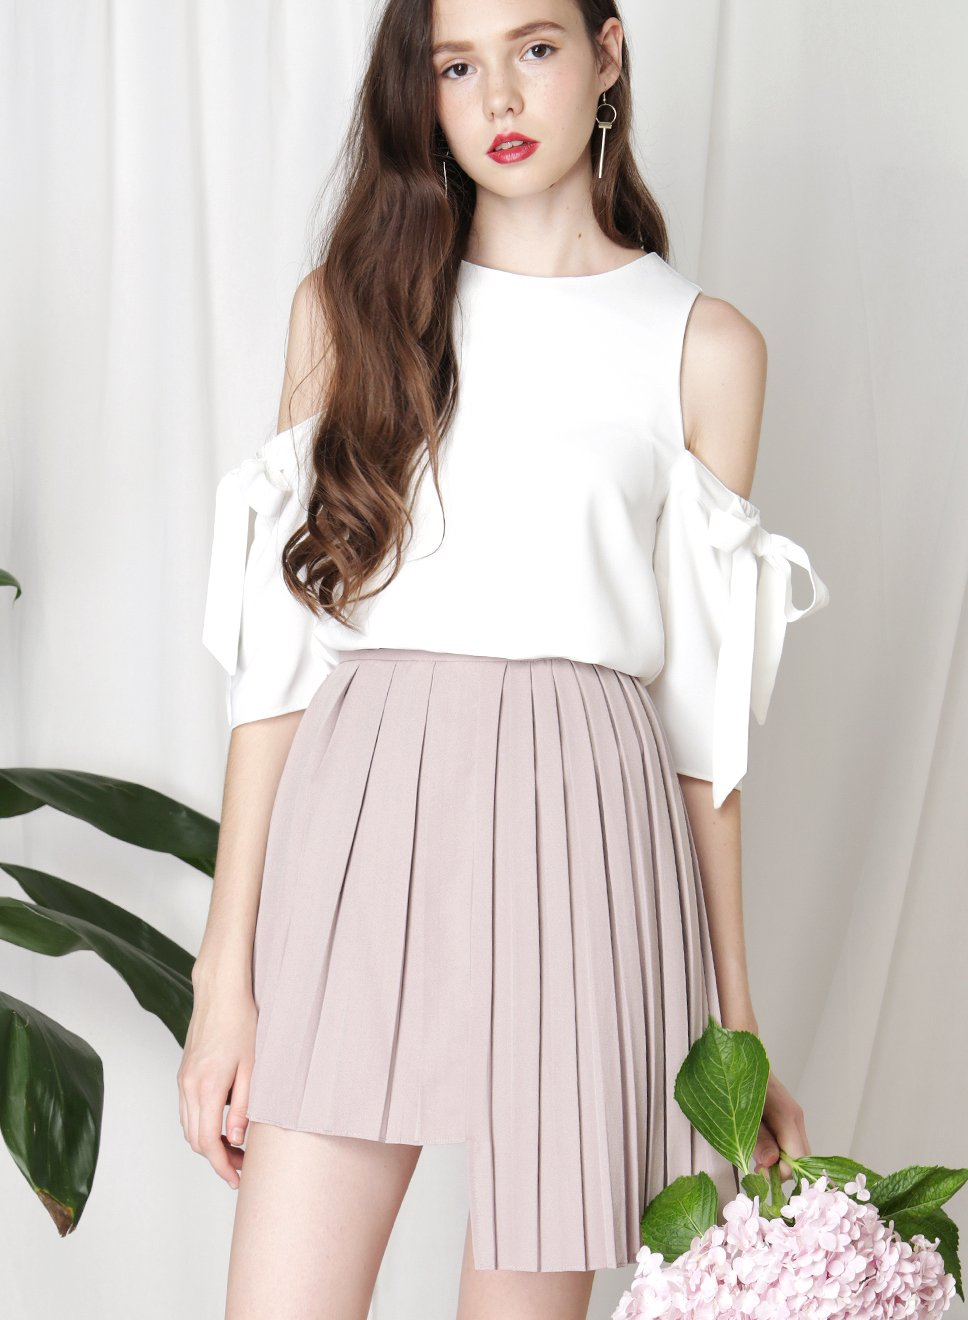 CRUSADE Uneven Hem Pleated Skirt (Taupe) at $34.50 only sold at And Well Dressed Online Fashion Store Singapore